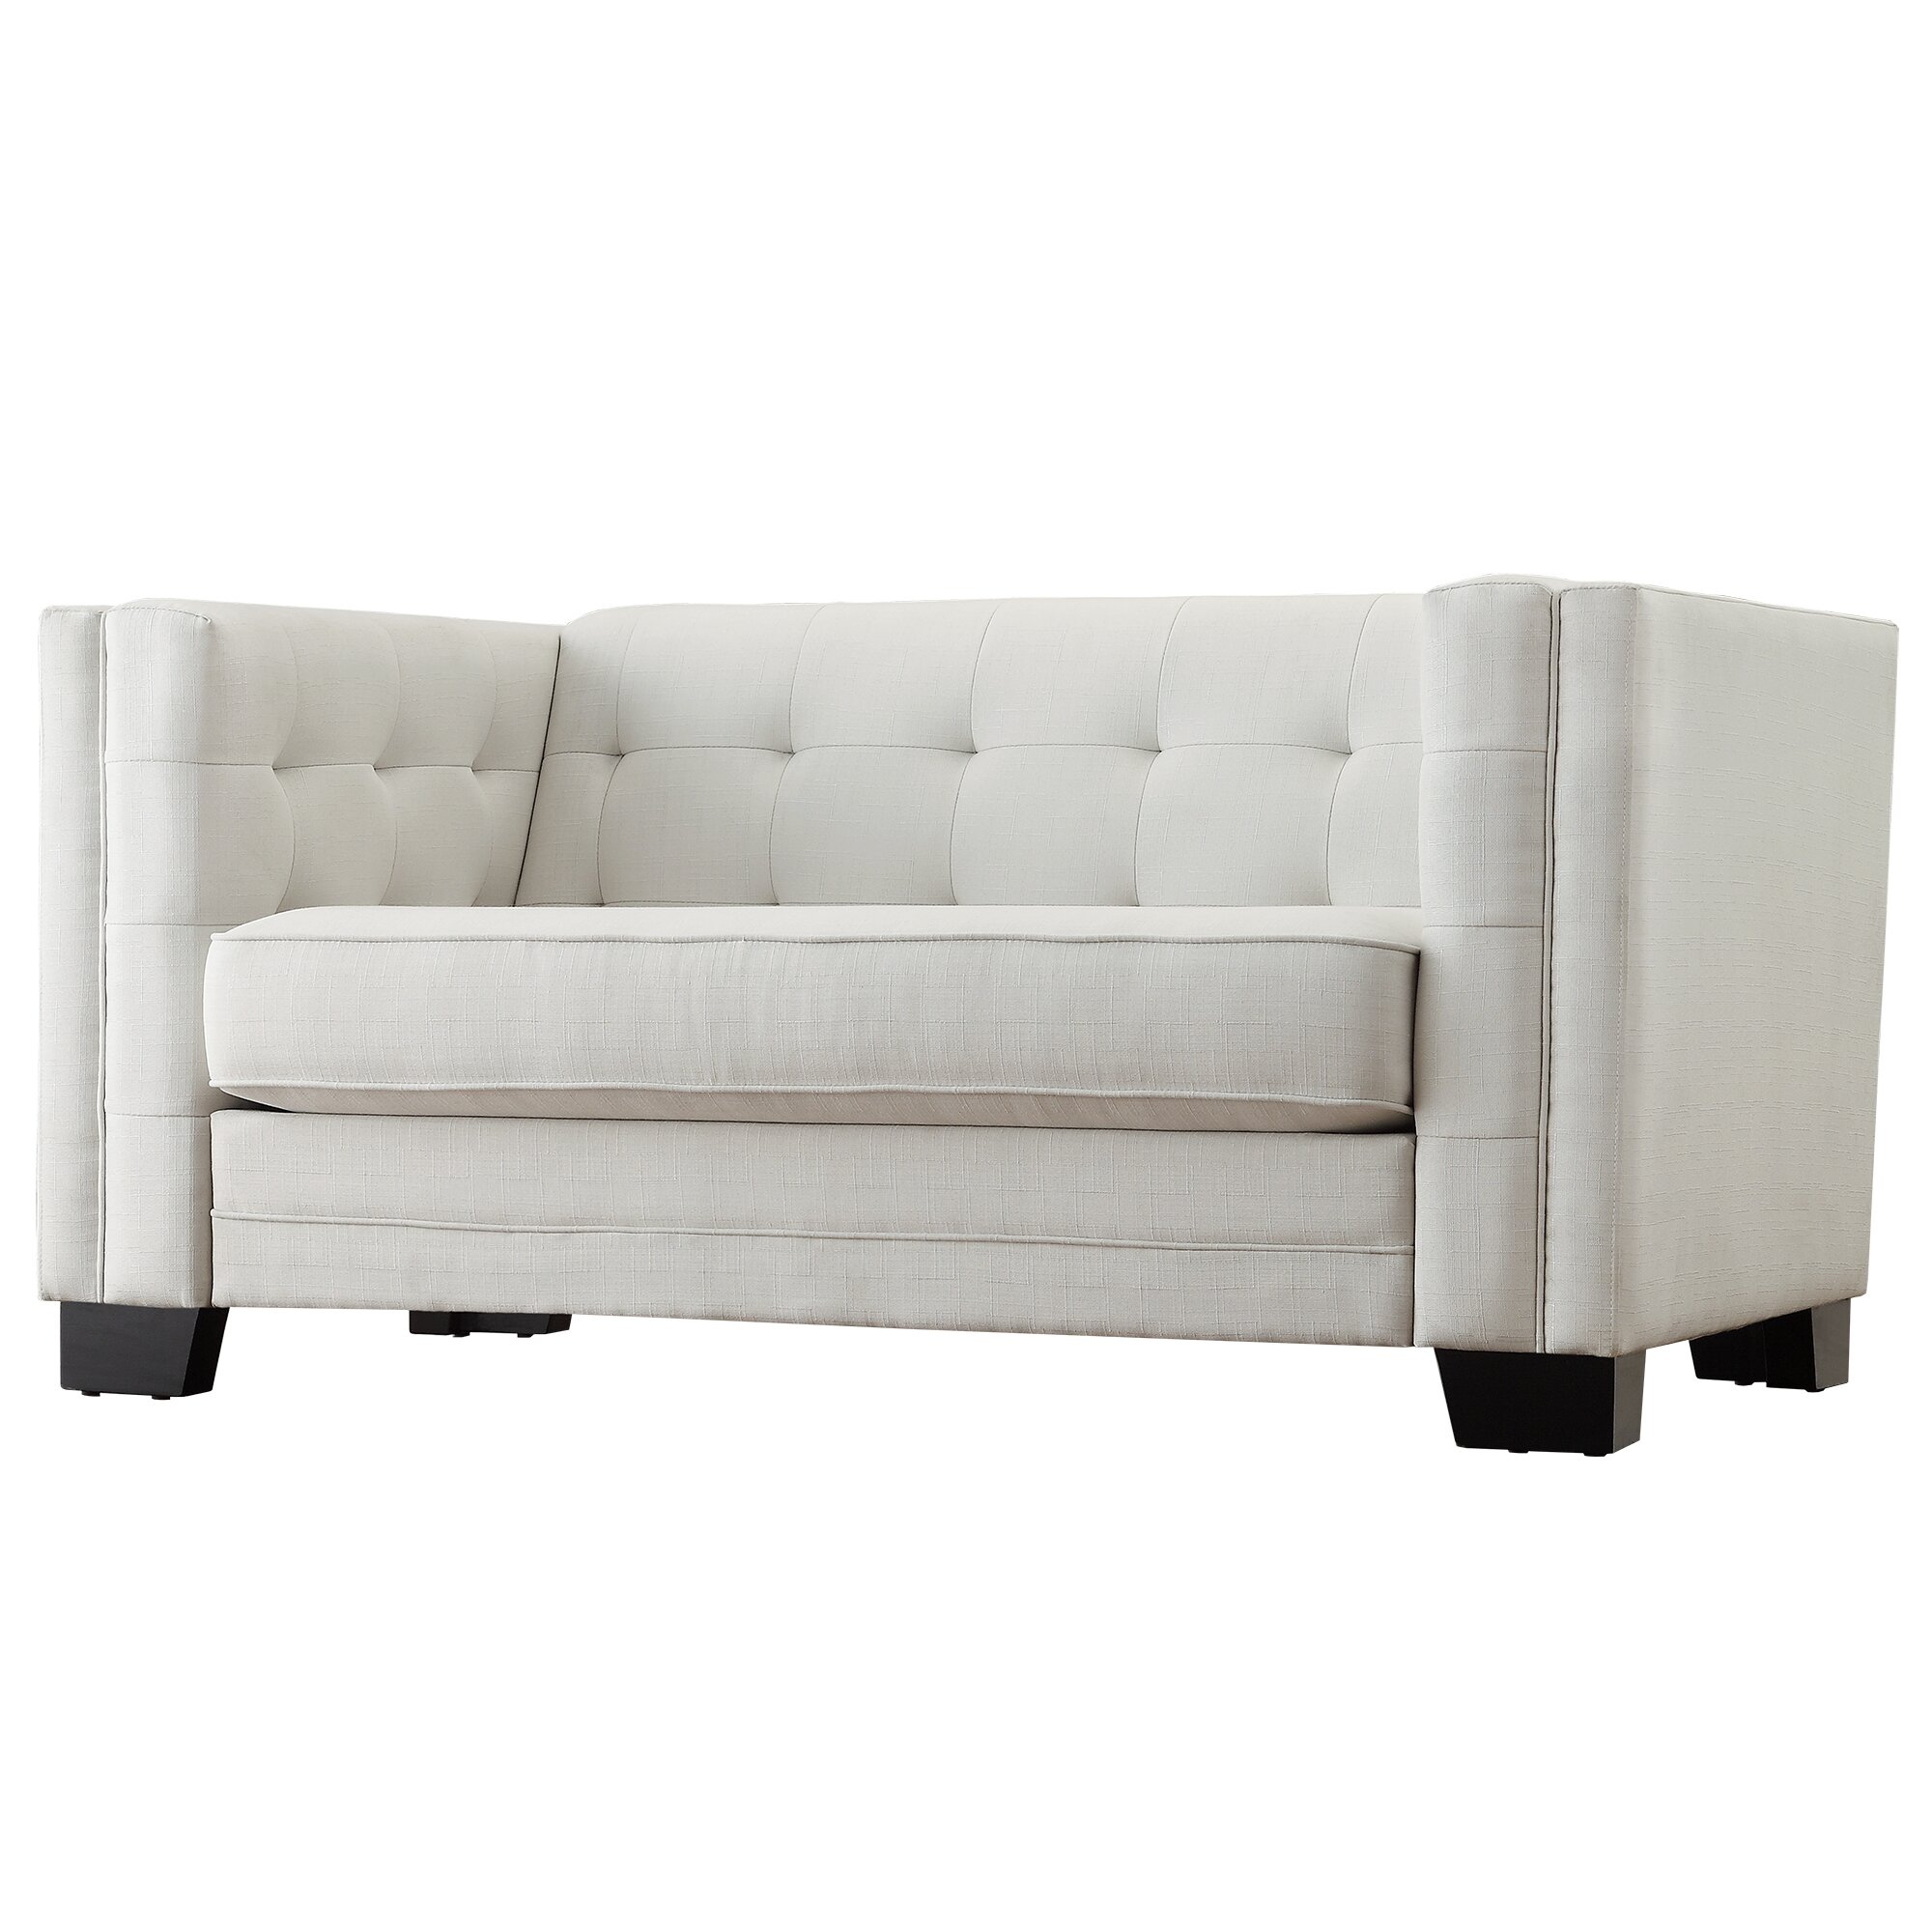 Mercury Row Vidette Tufted Upholstered Loveseat Reviews Wayfair